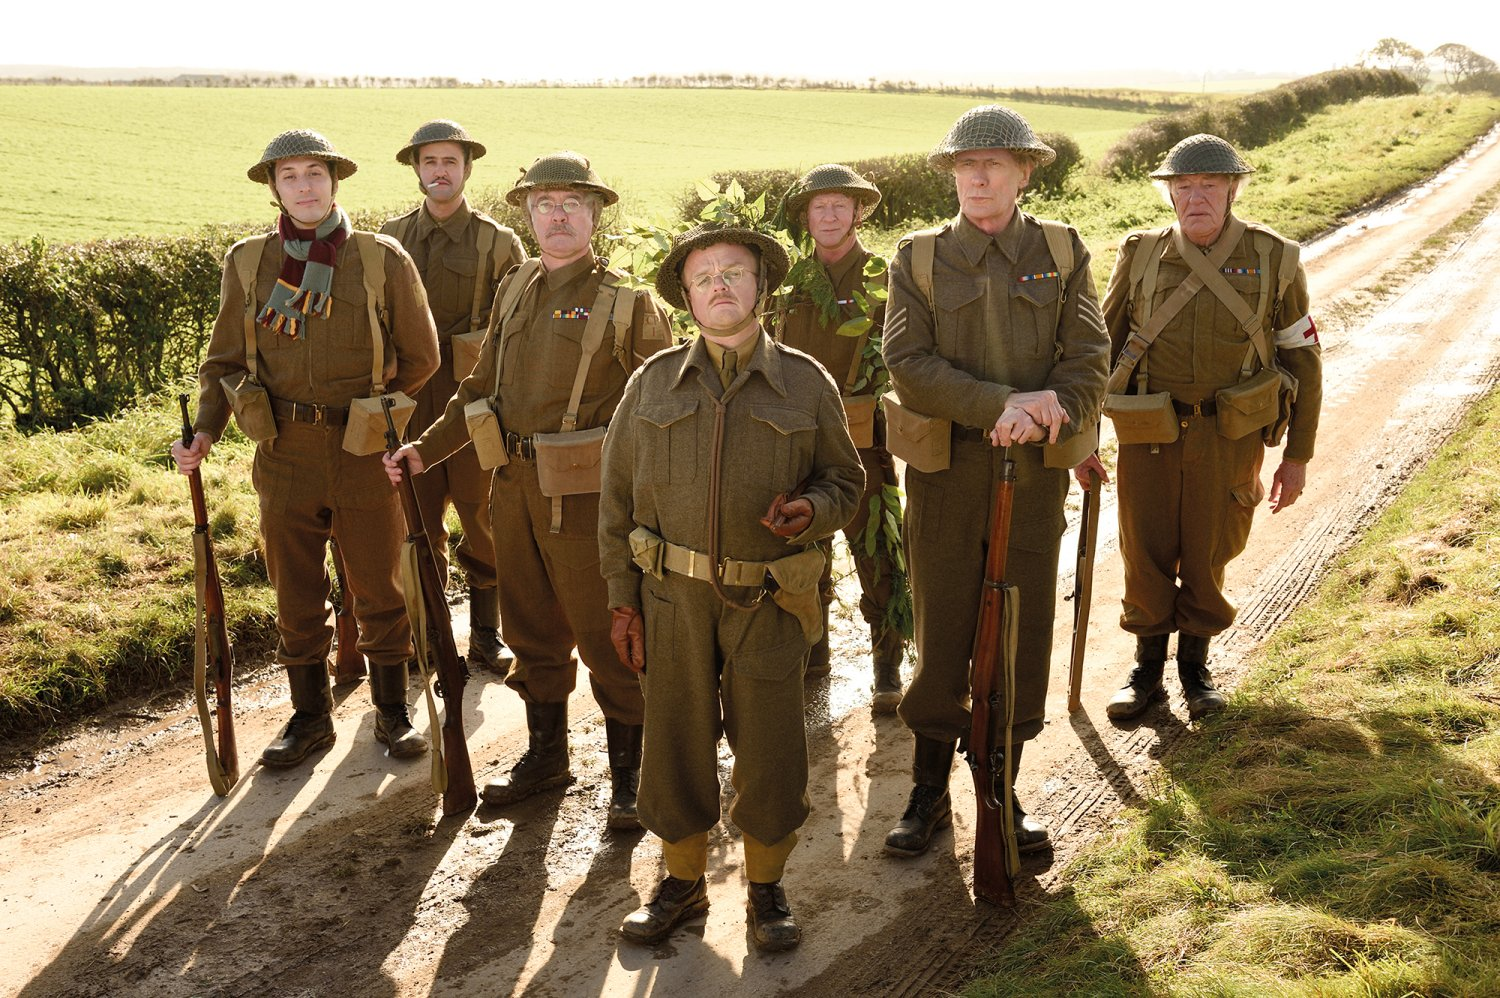 The Walmington-on-Sea Home Guard in Dad's Army